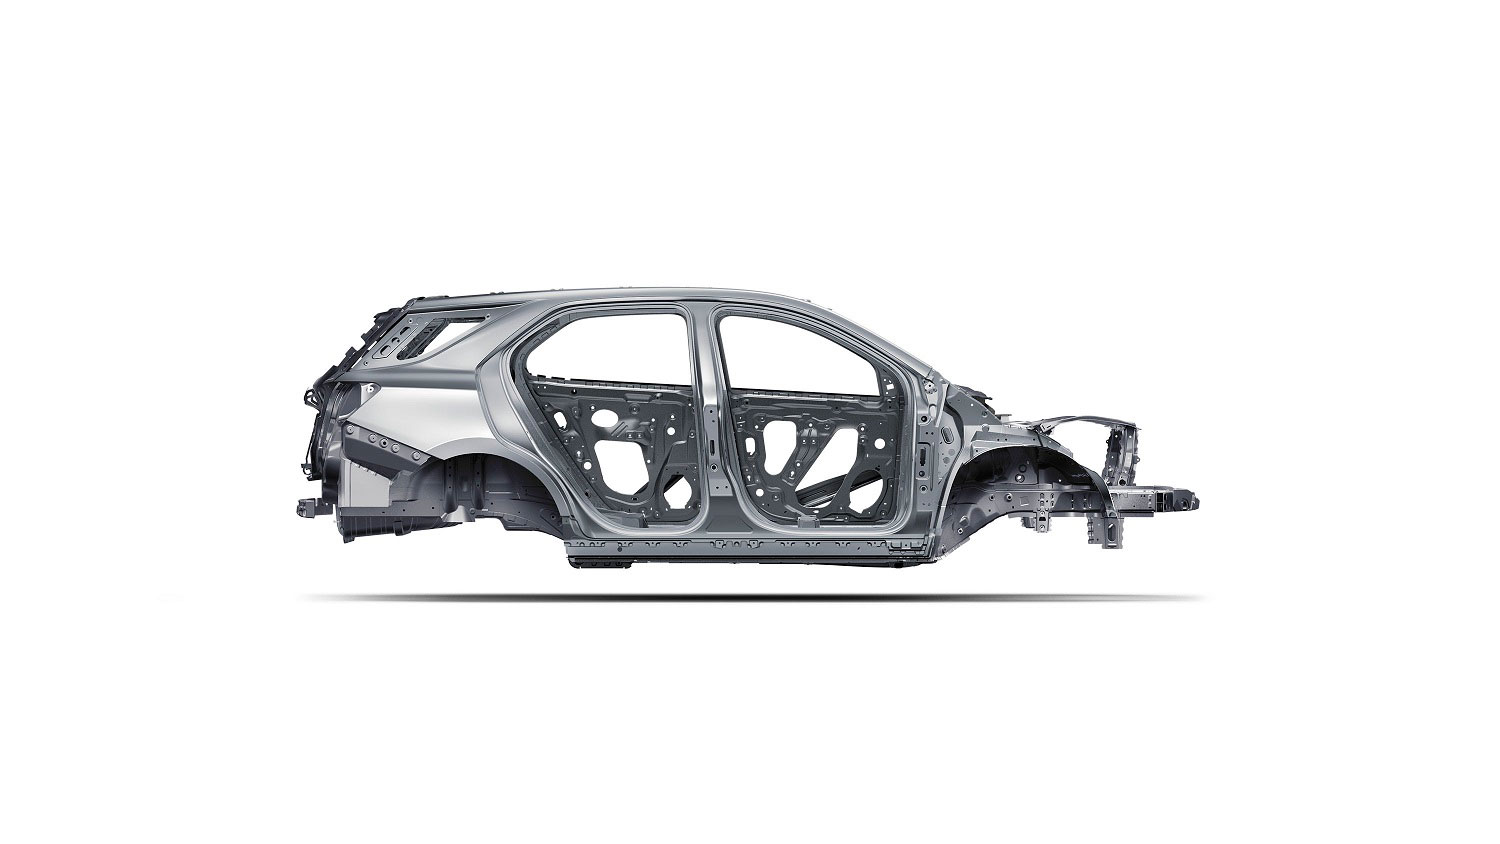 Chevrolet Equinox Frame-Arab-Motor-World-02